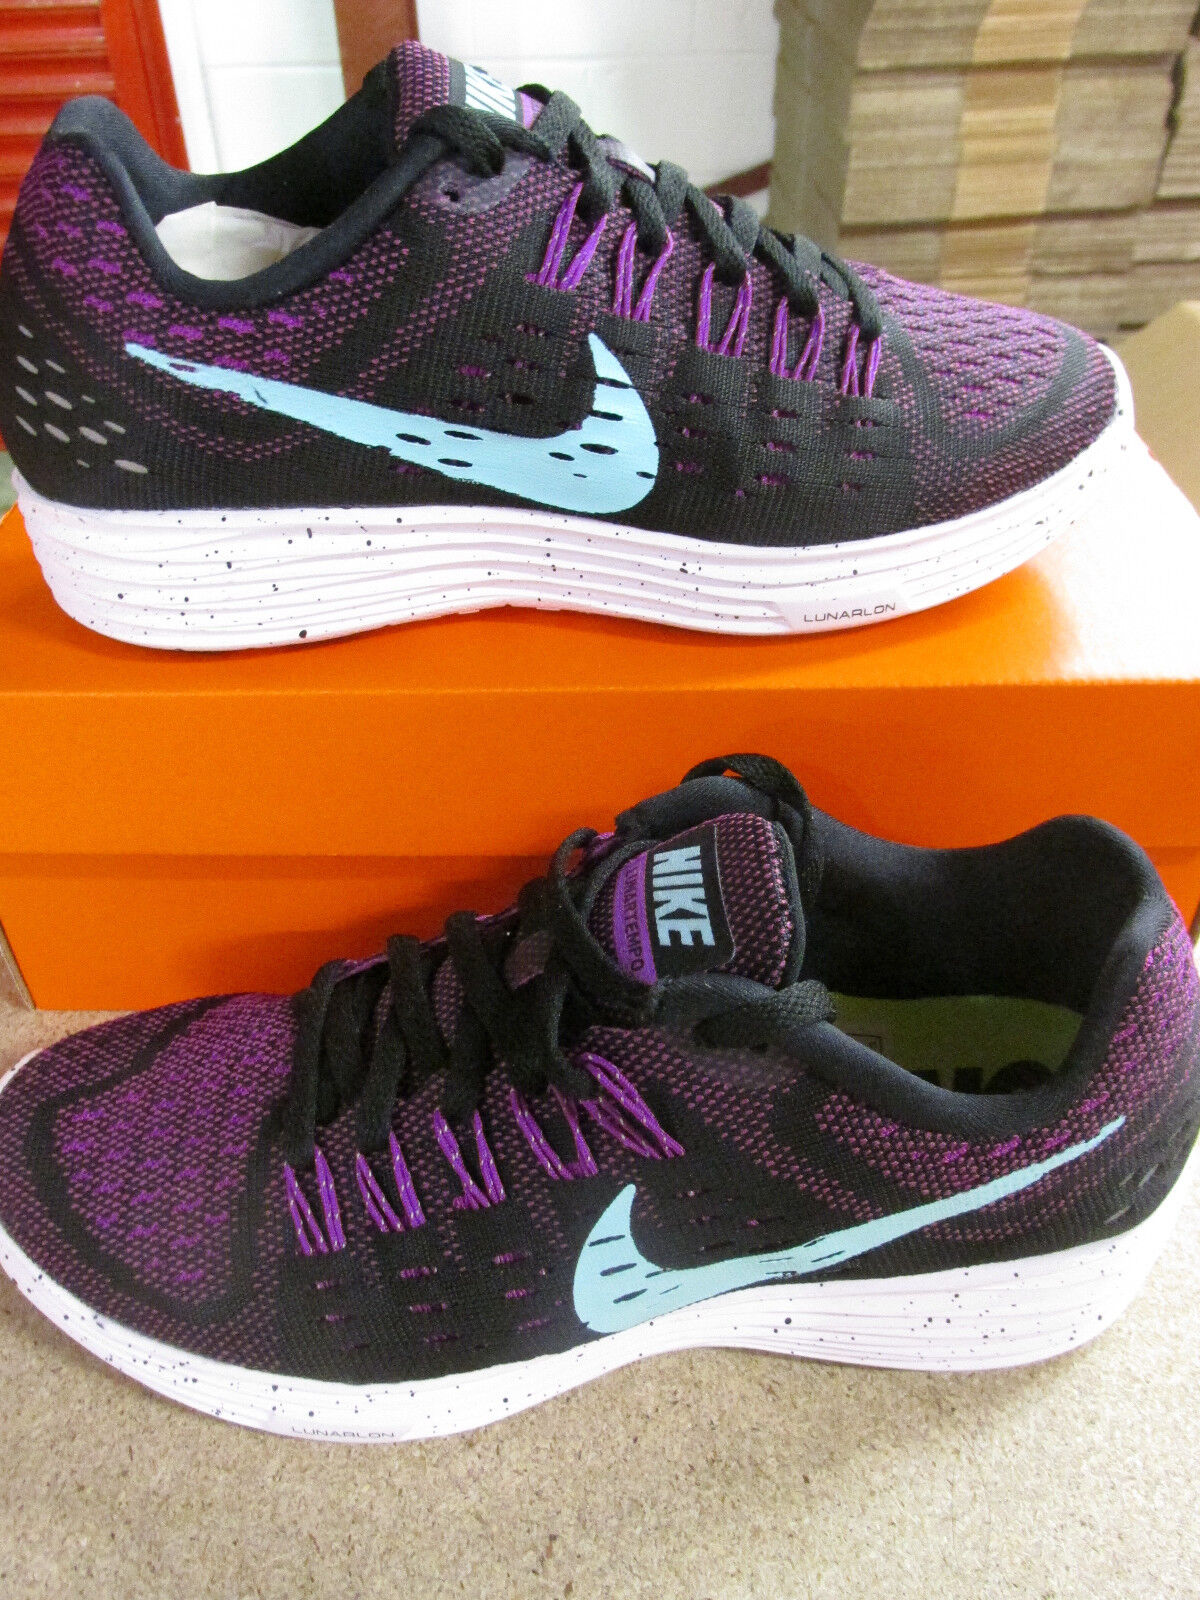 nike lunartempo  Femme  fonctionnement trainers 705462 504 sneakers  chaussures